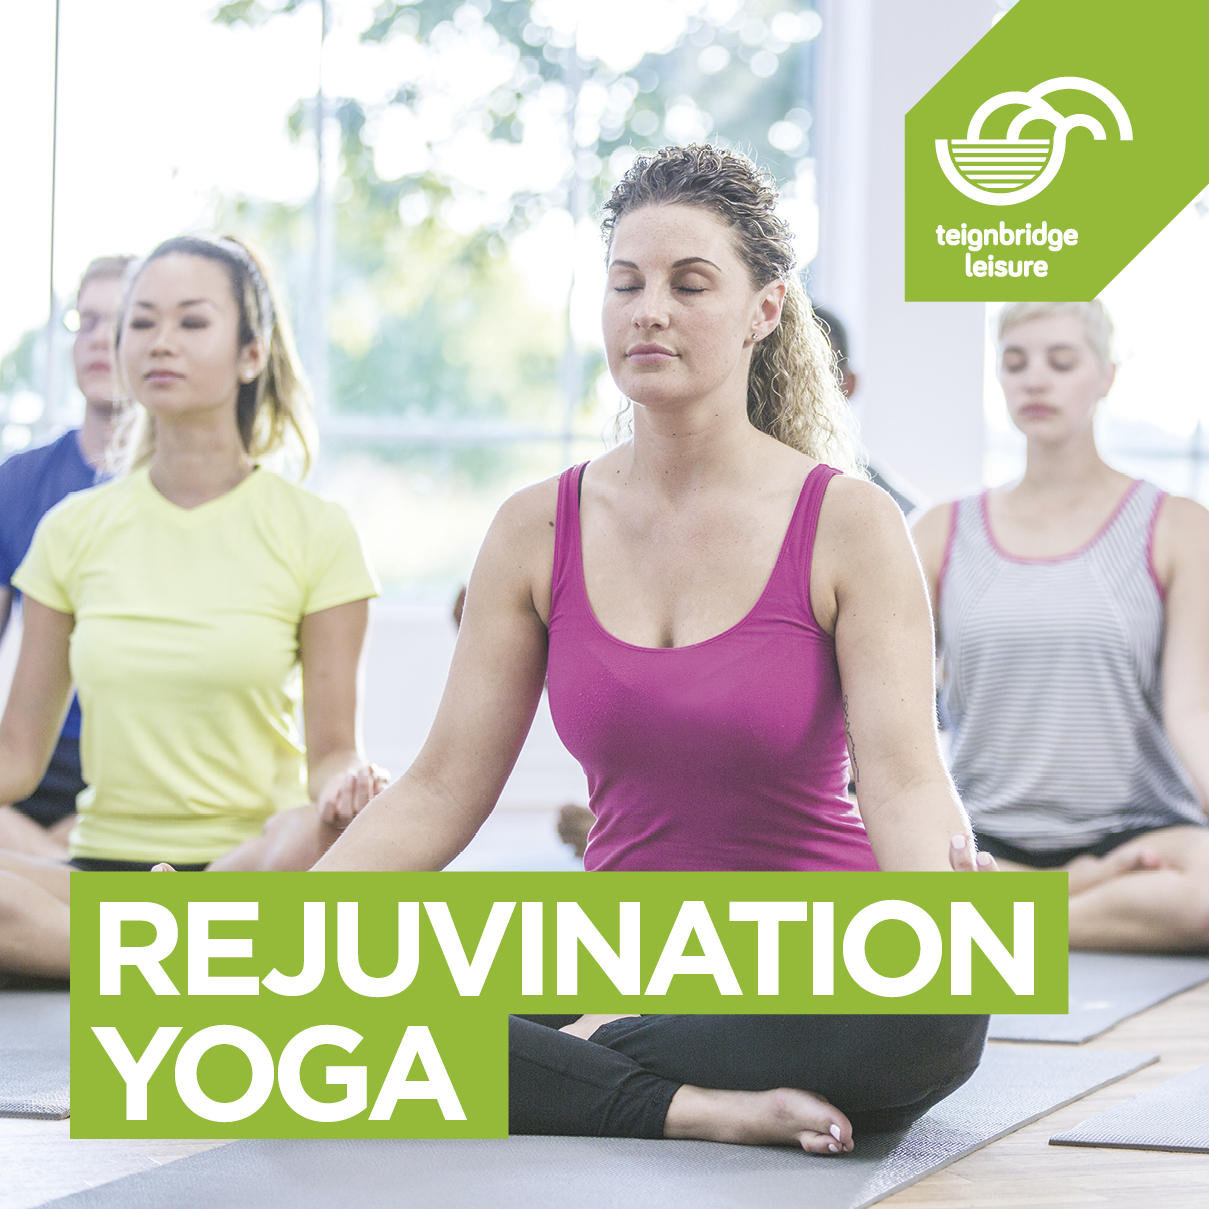 Rejuvenation Yoga